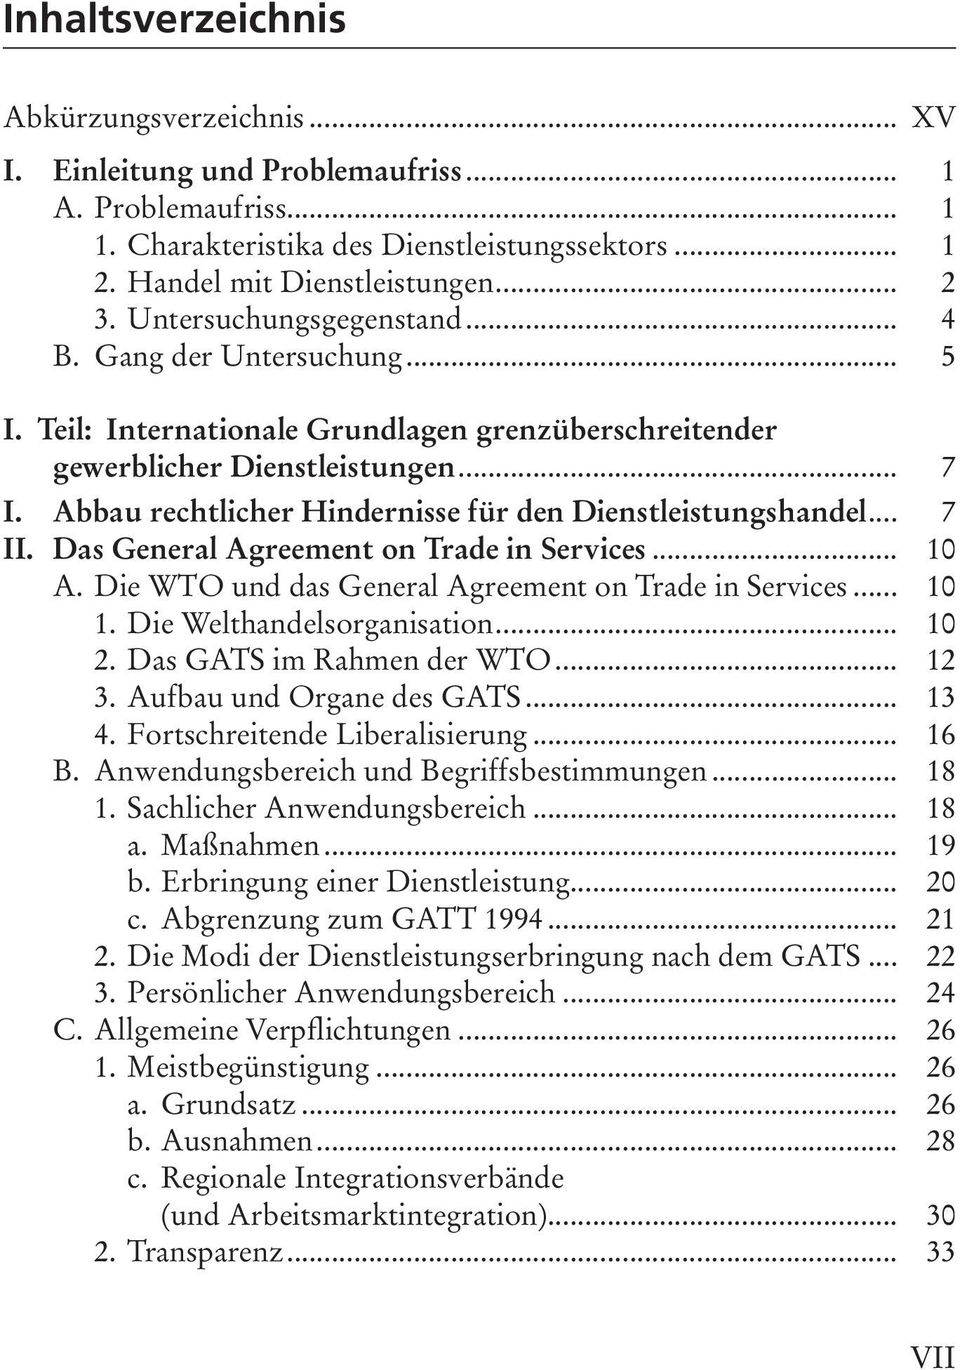 Abbau rechtlicher Hindernisse für den Dienstleistungshandel... 7 II. Das General Agreement on Trade in Services... 10 A. Die WTO und das General Agreement on Trade in Services... 10 1.